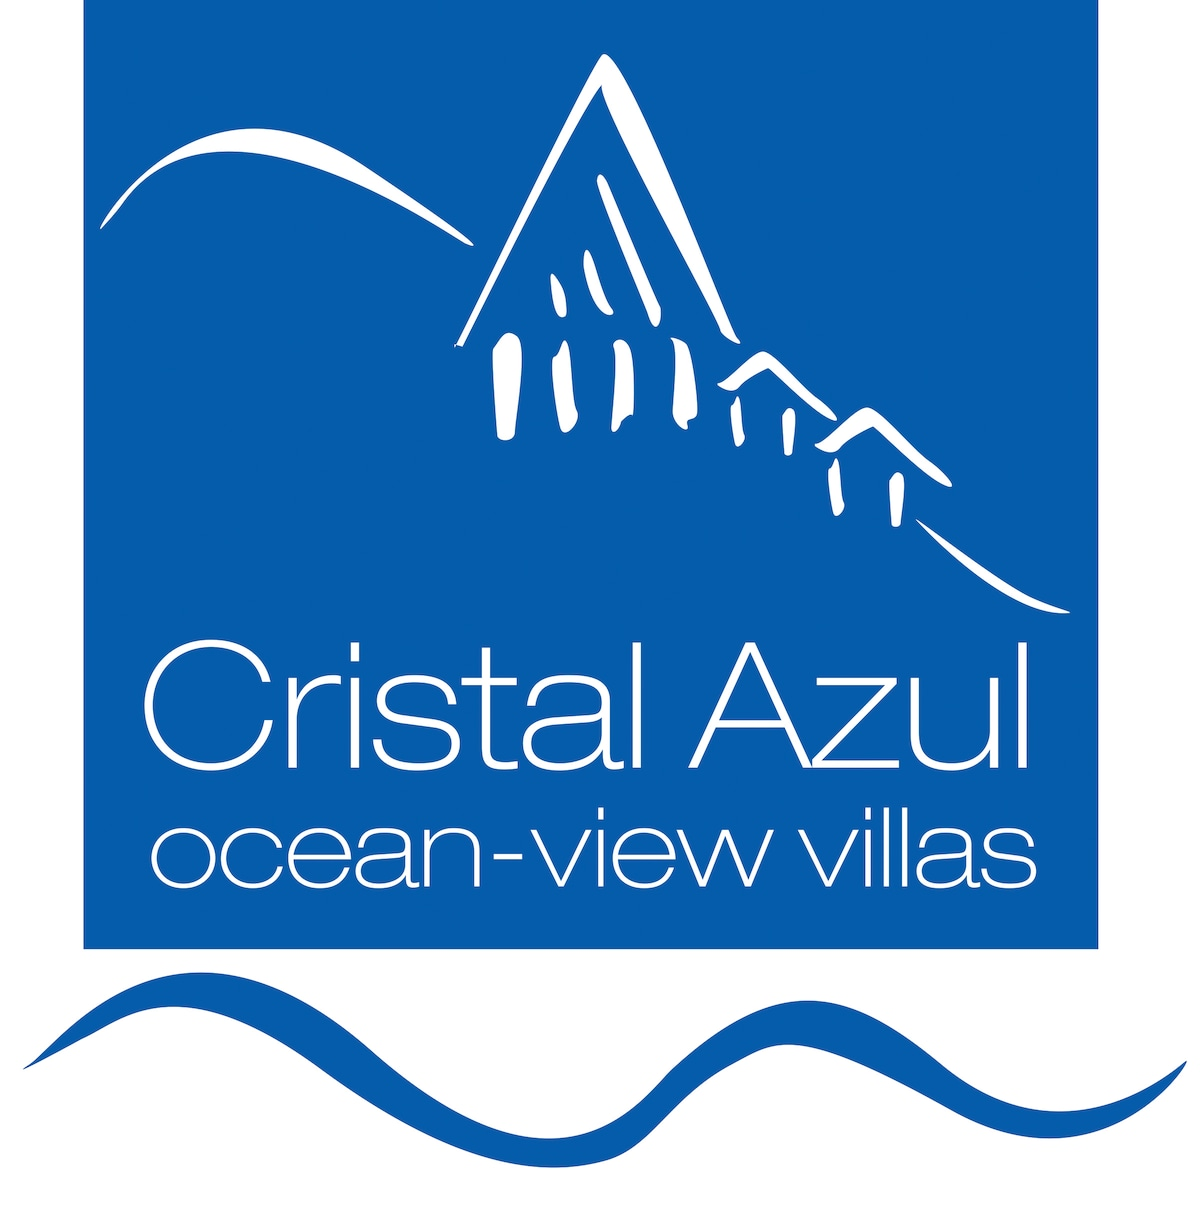 Cristal Azul From Bejuco, Costa Rica